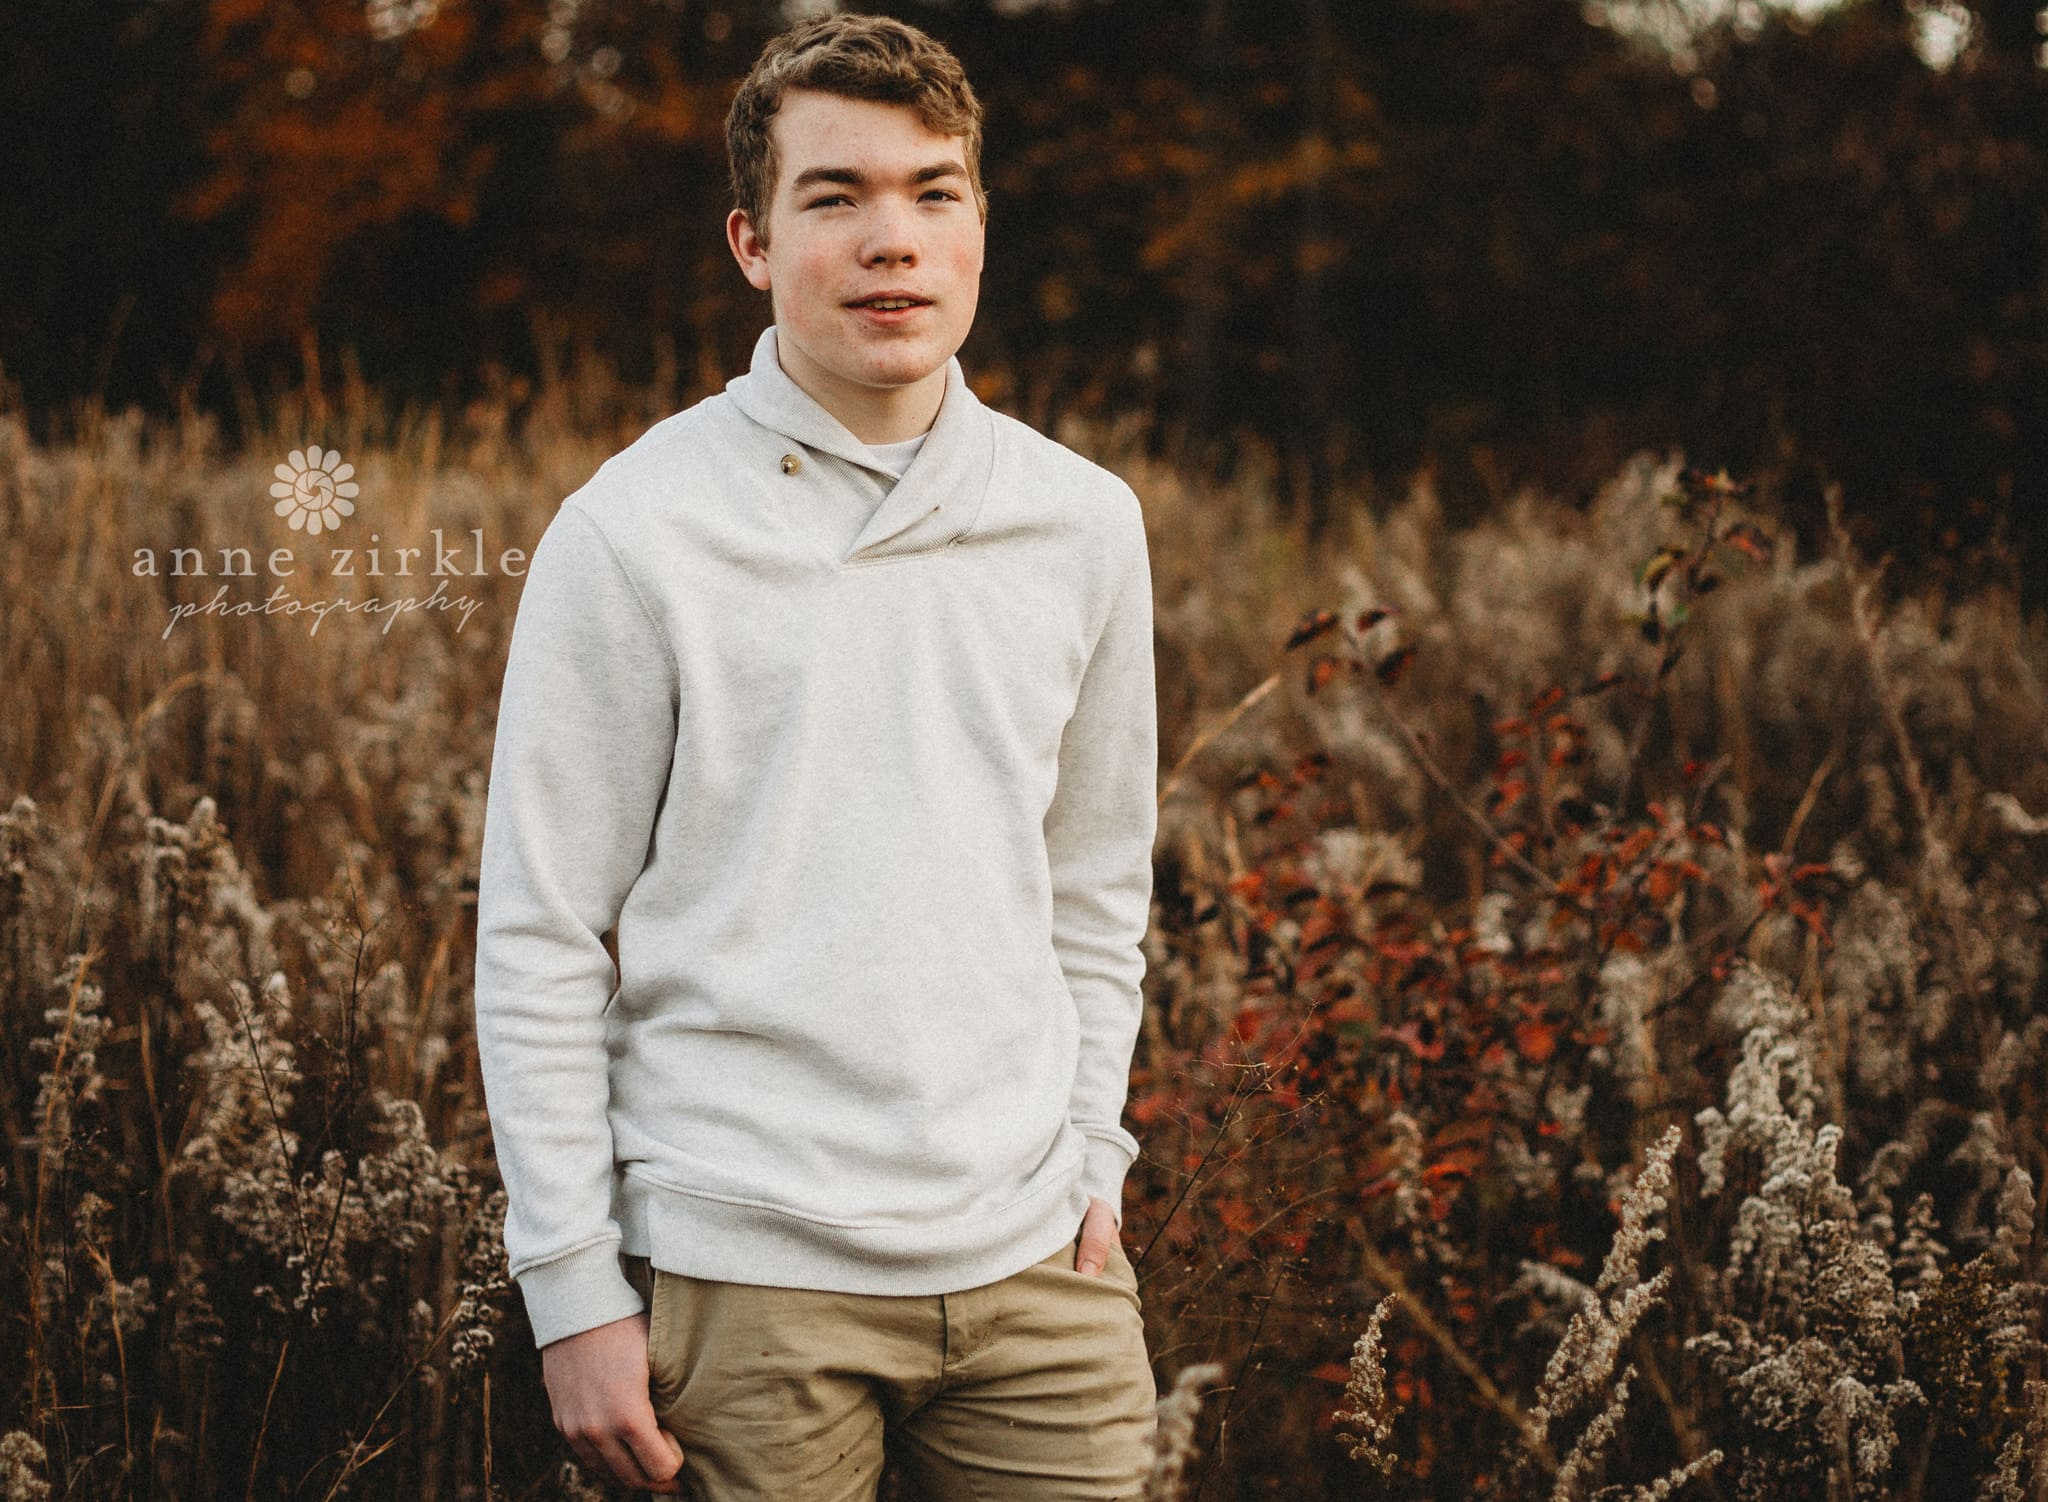 high school boy standing in autumn field #mooresville #northcarolina #davidson #lakenorman #southiredell #pinelakeprep #highschool #highschoolsenior #highschoolseniors #seniors